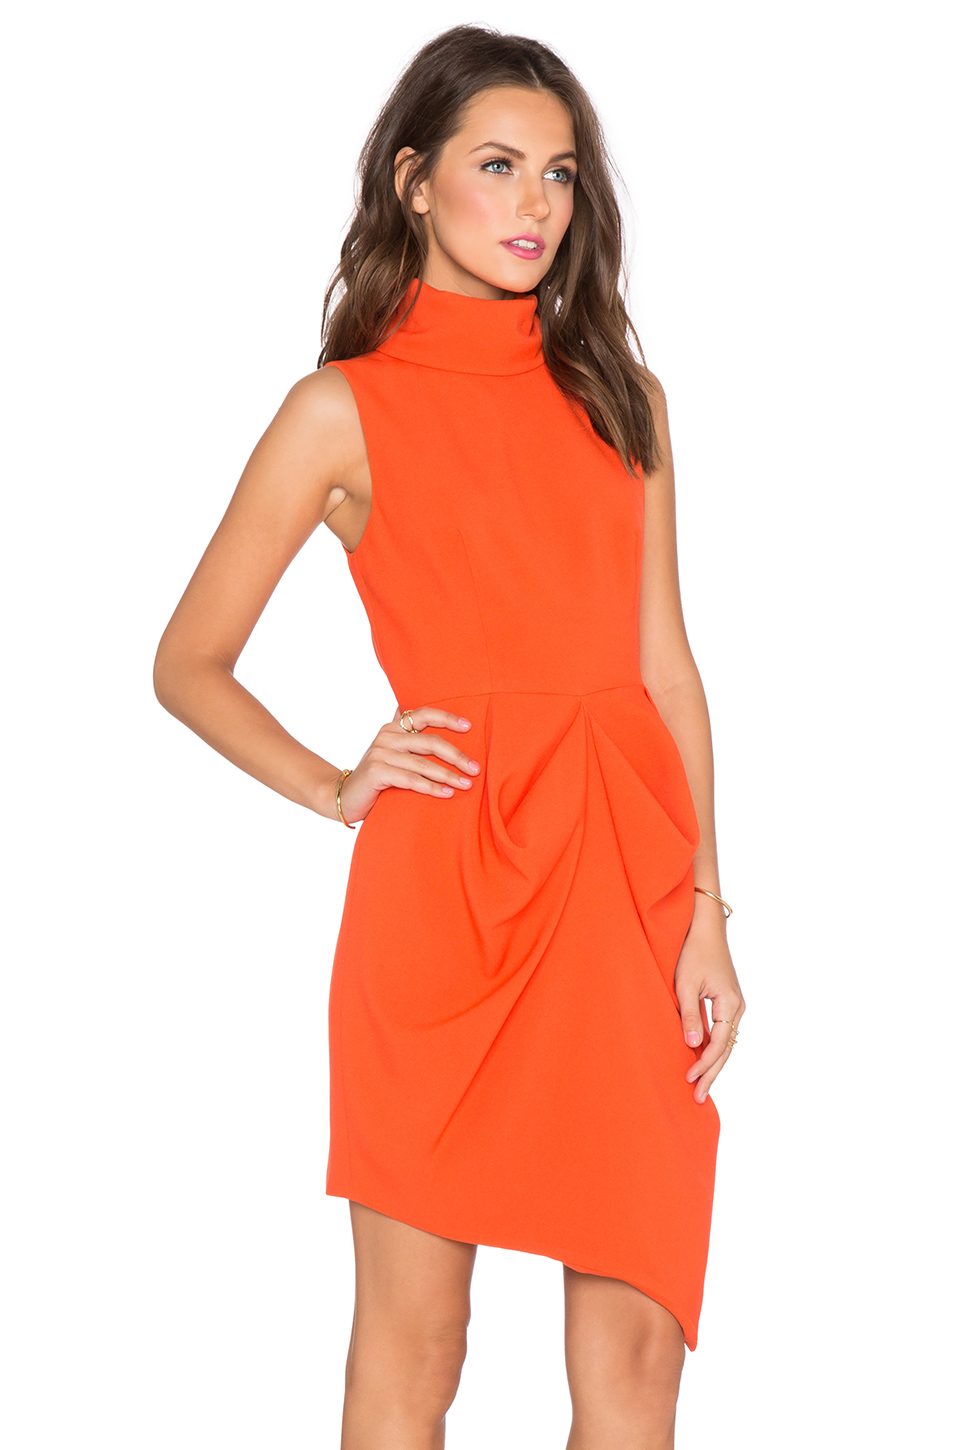 Orange Skies Dress $150.00